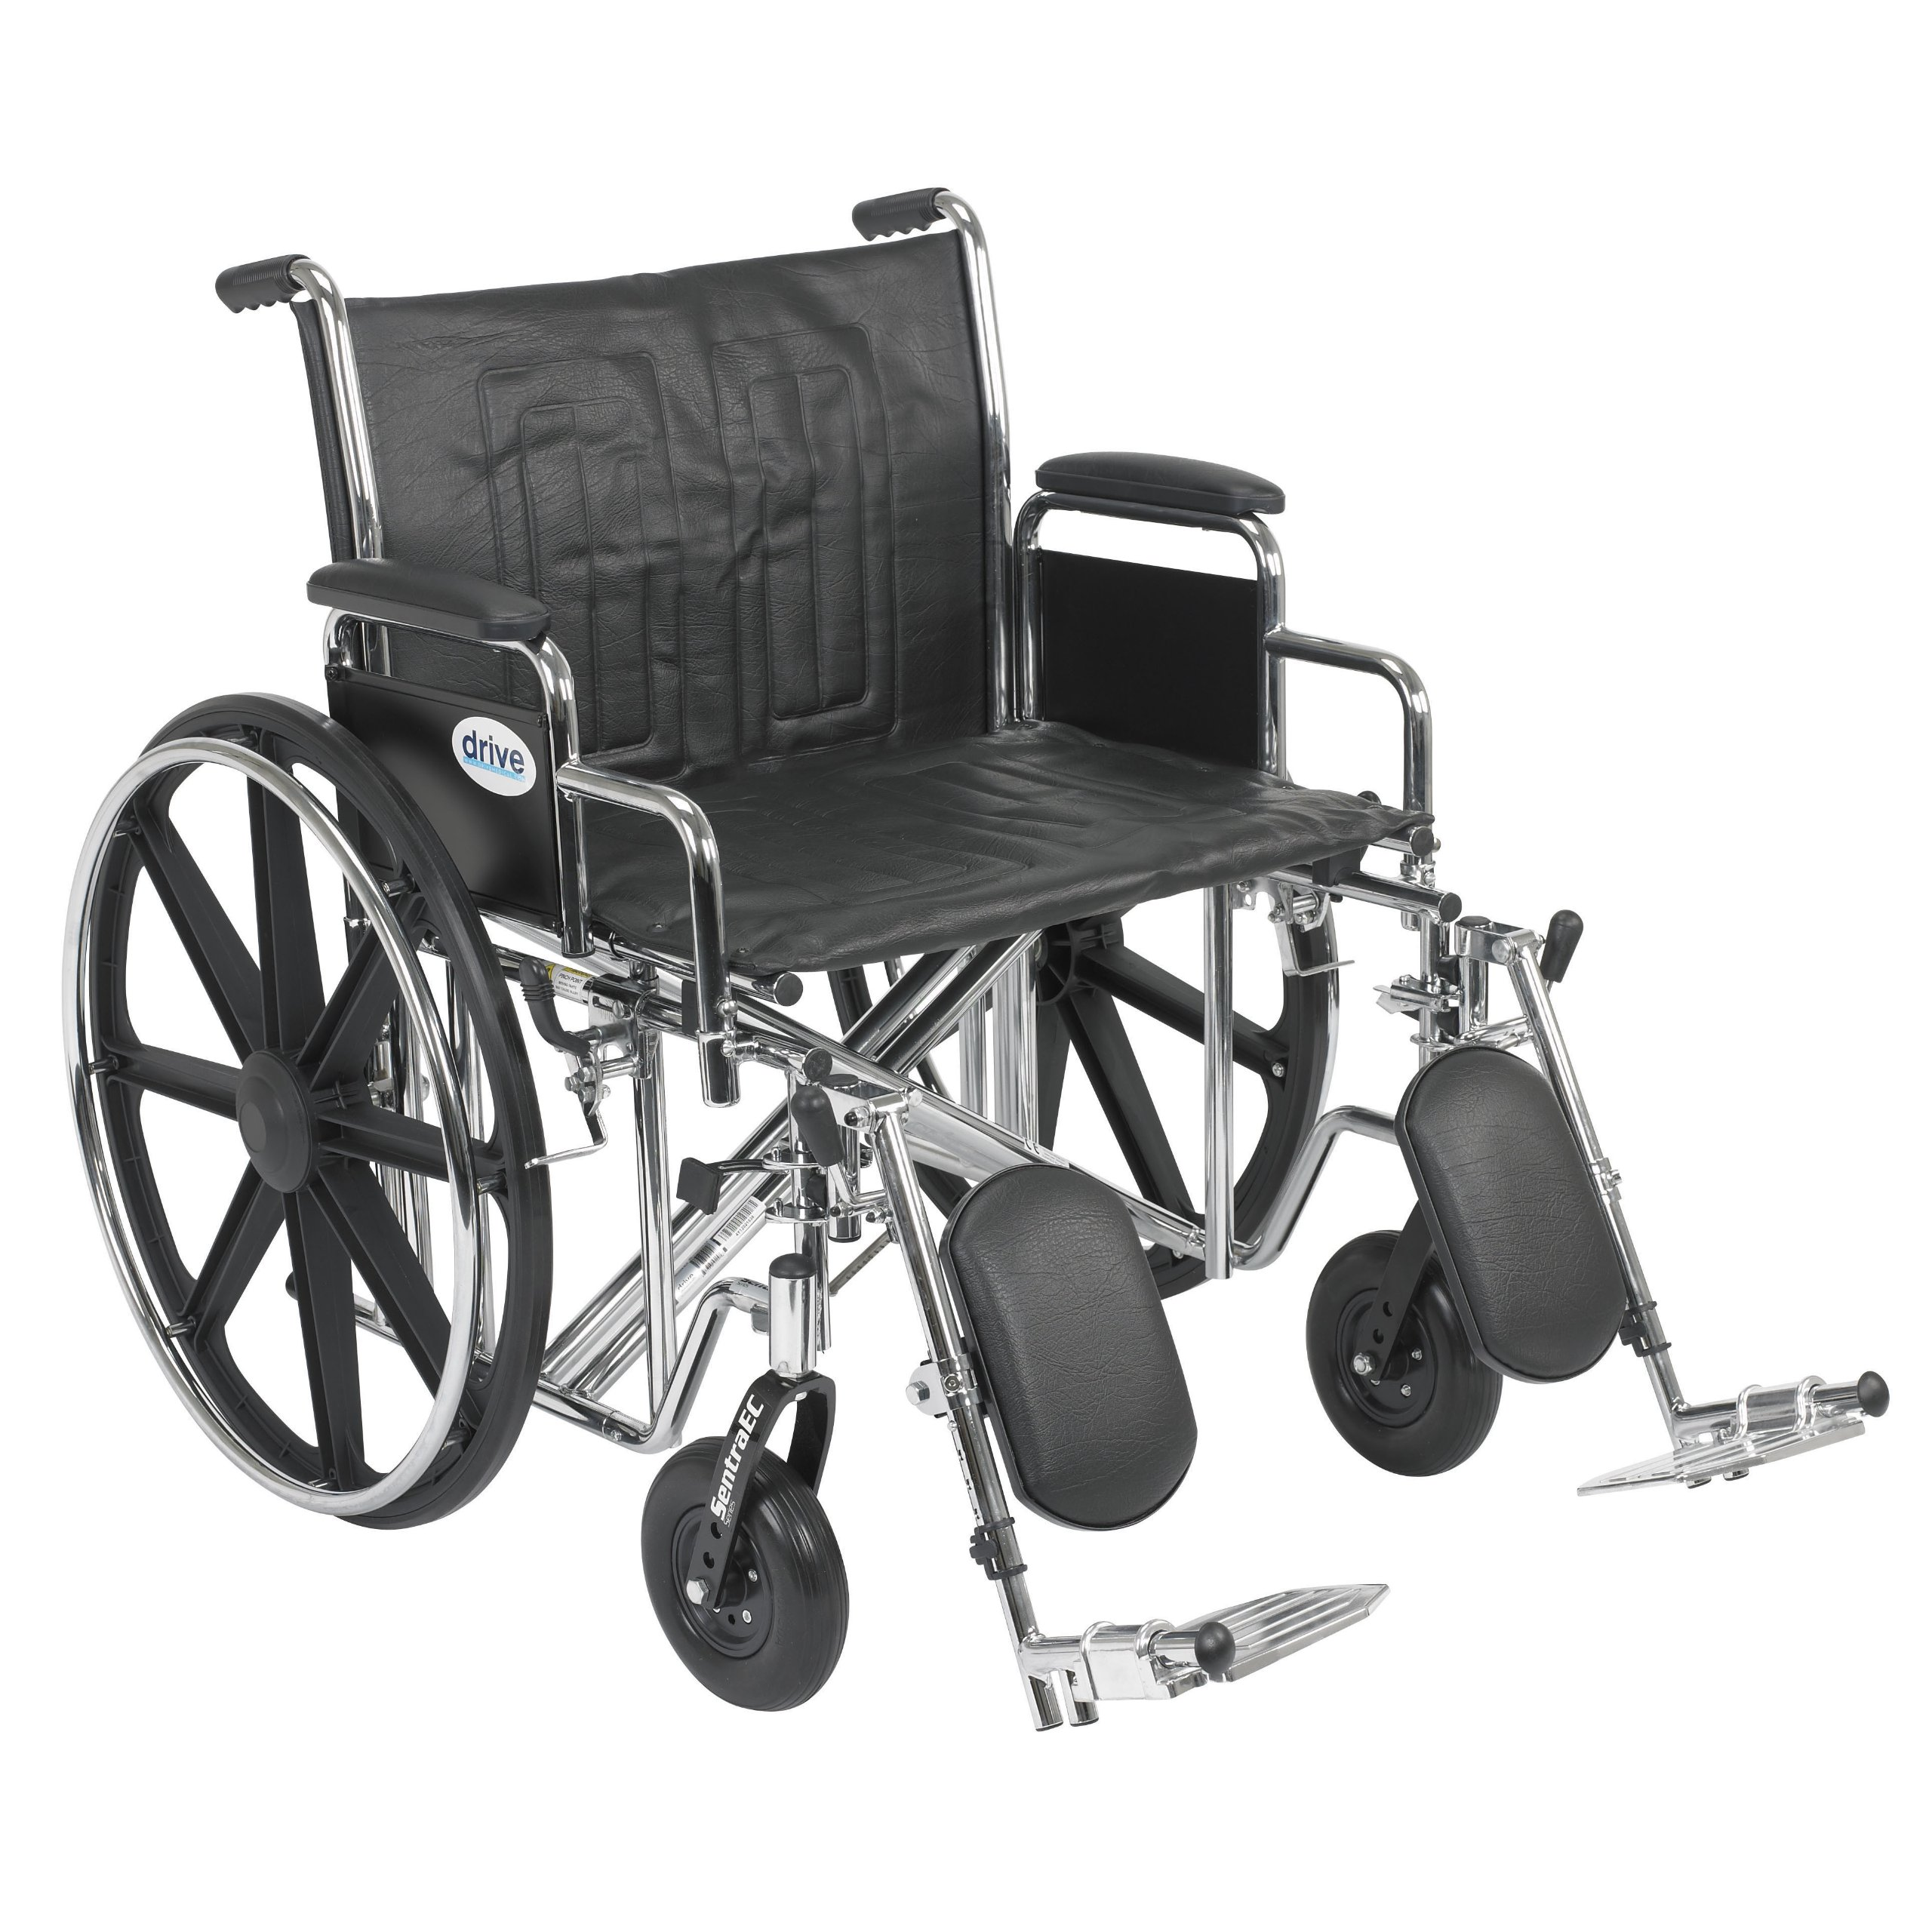 Drive Medical Sentra EC Heavy Duty Wheelchair with Various Arm Styles and Front Rigging Options, Black, Bariatric, 24 Inch by Drive Medical